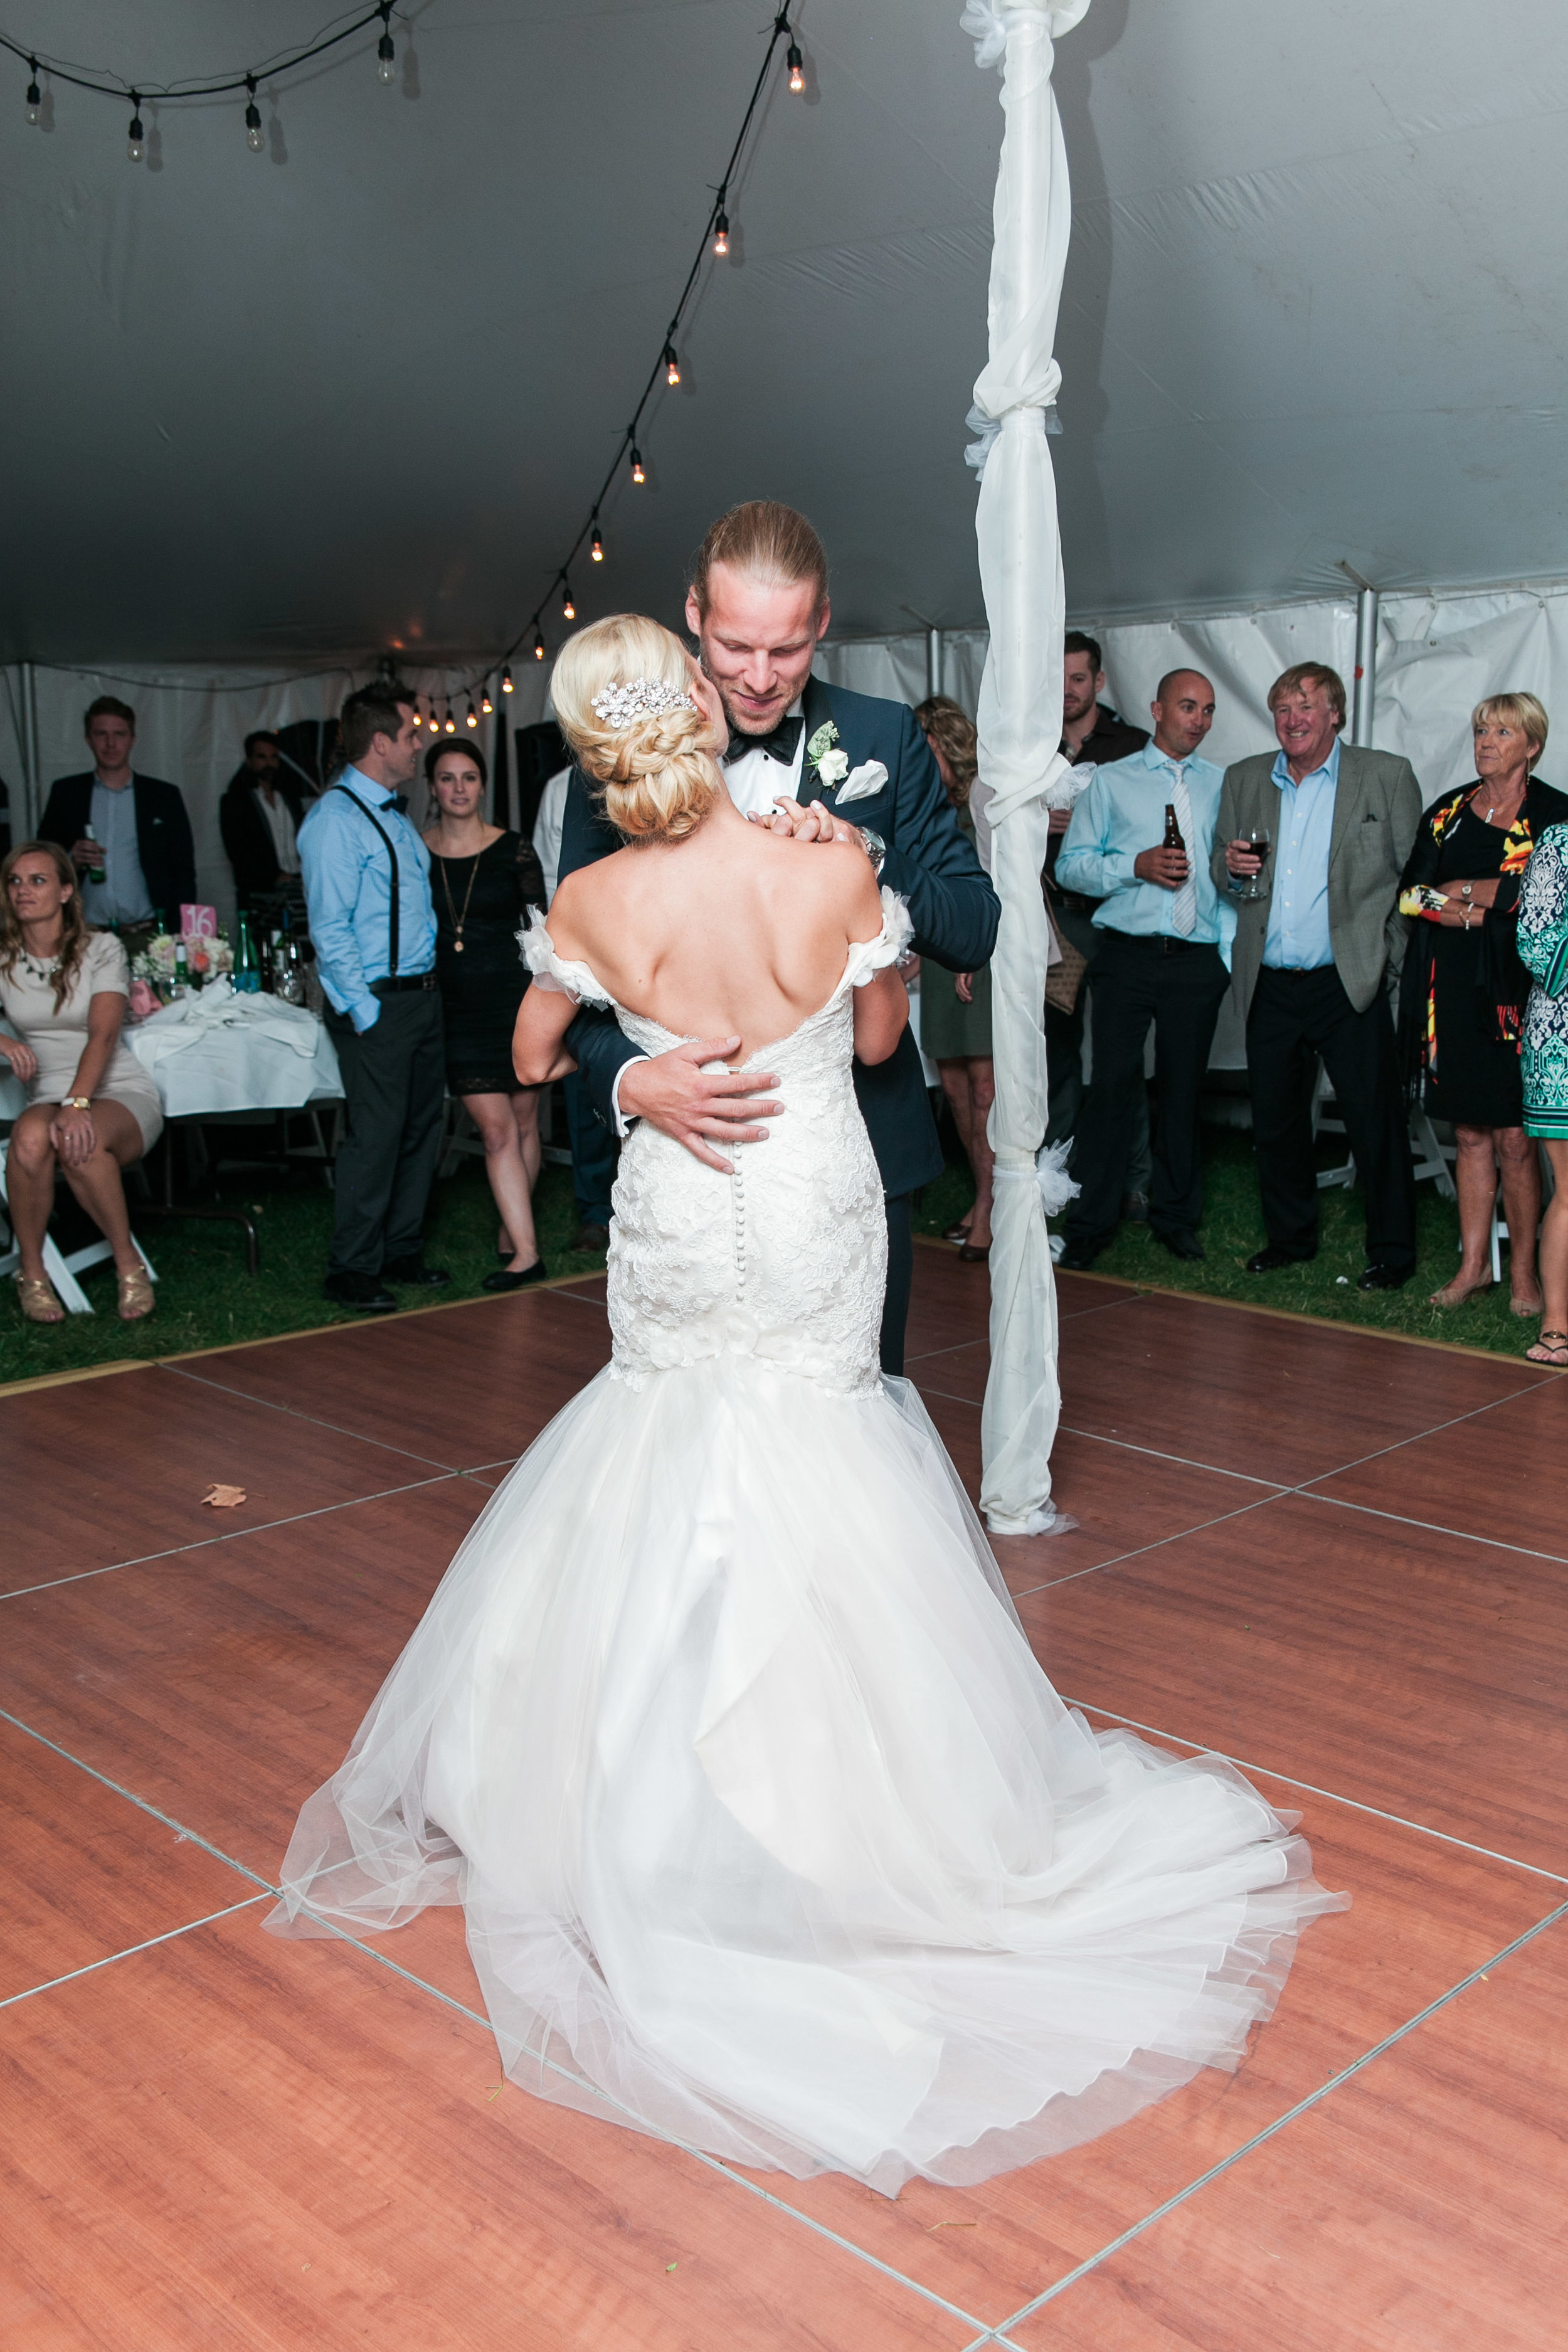 Couple during first dance at tented wedding